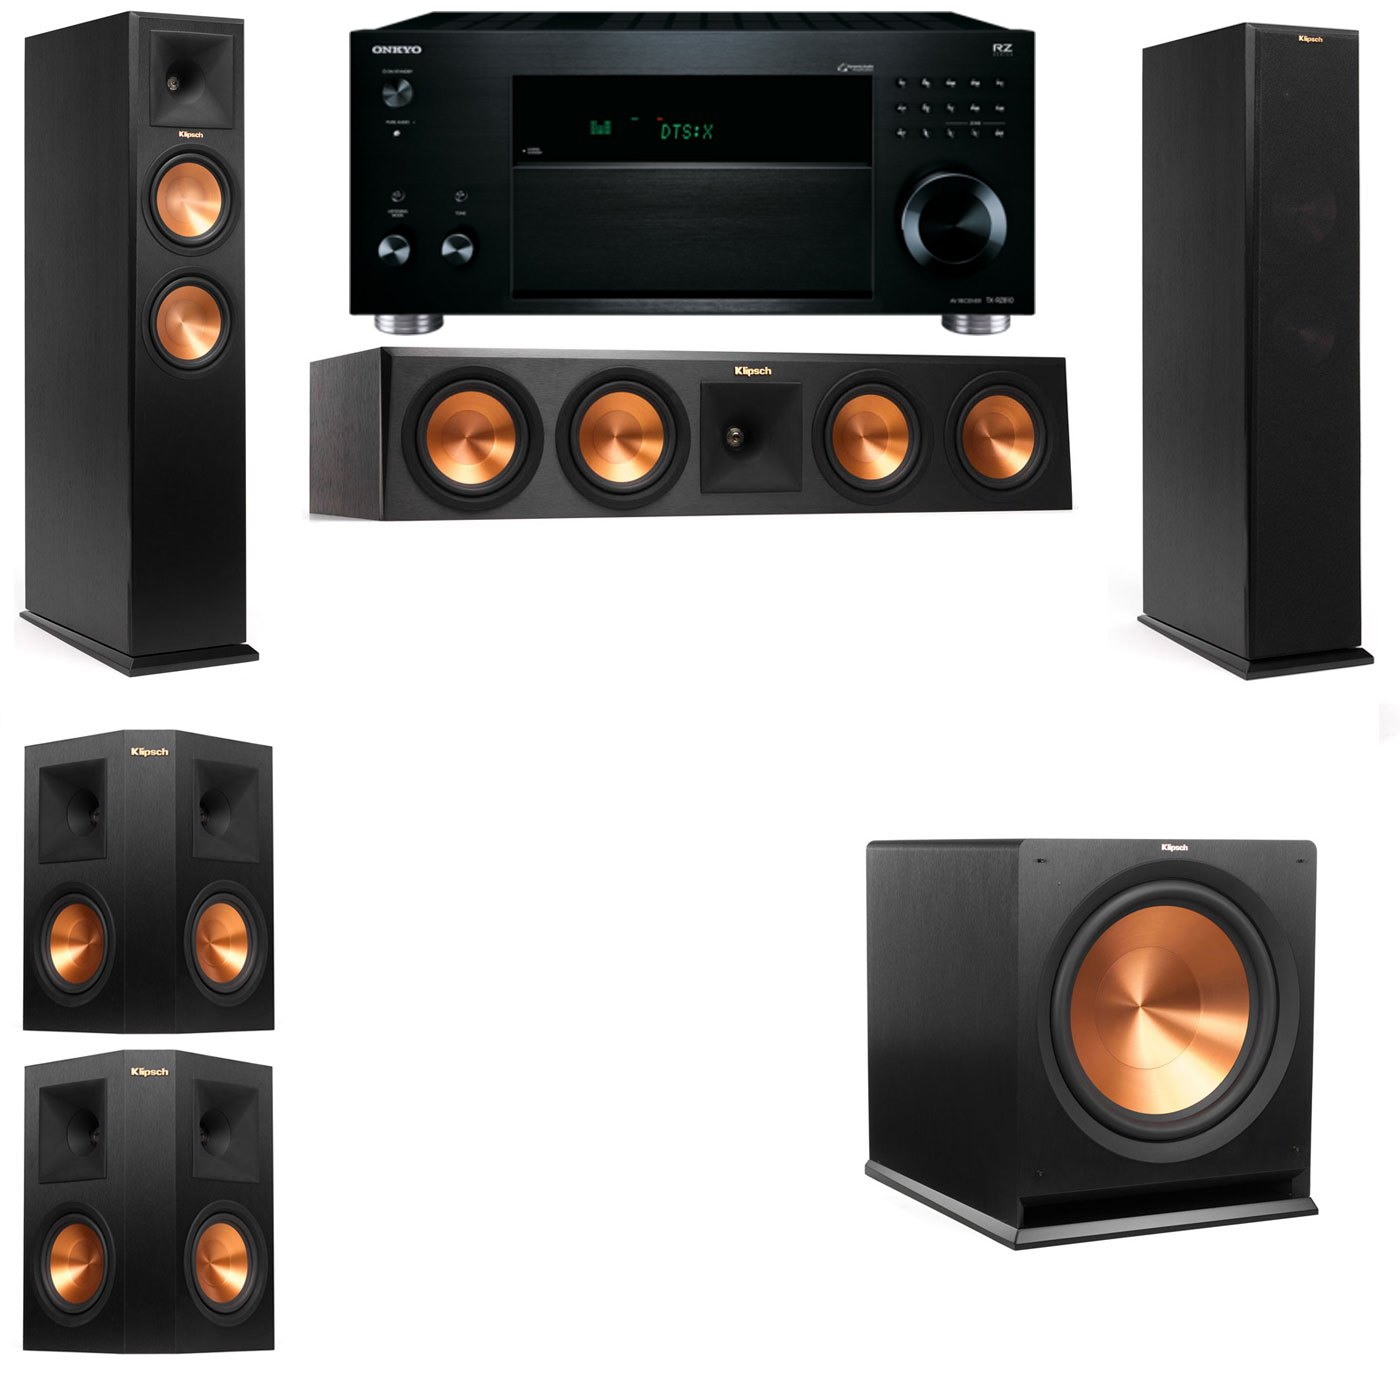 Klipsch RP-260F Tower Speakers-5.1-Onkyo TX-RZ810